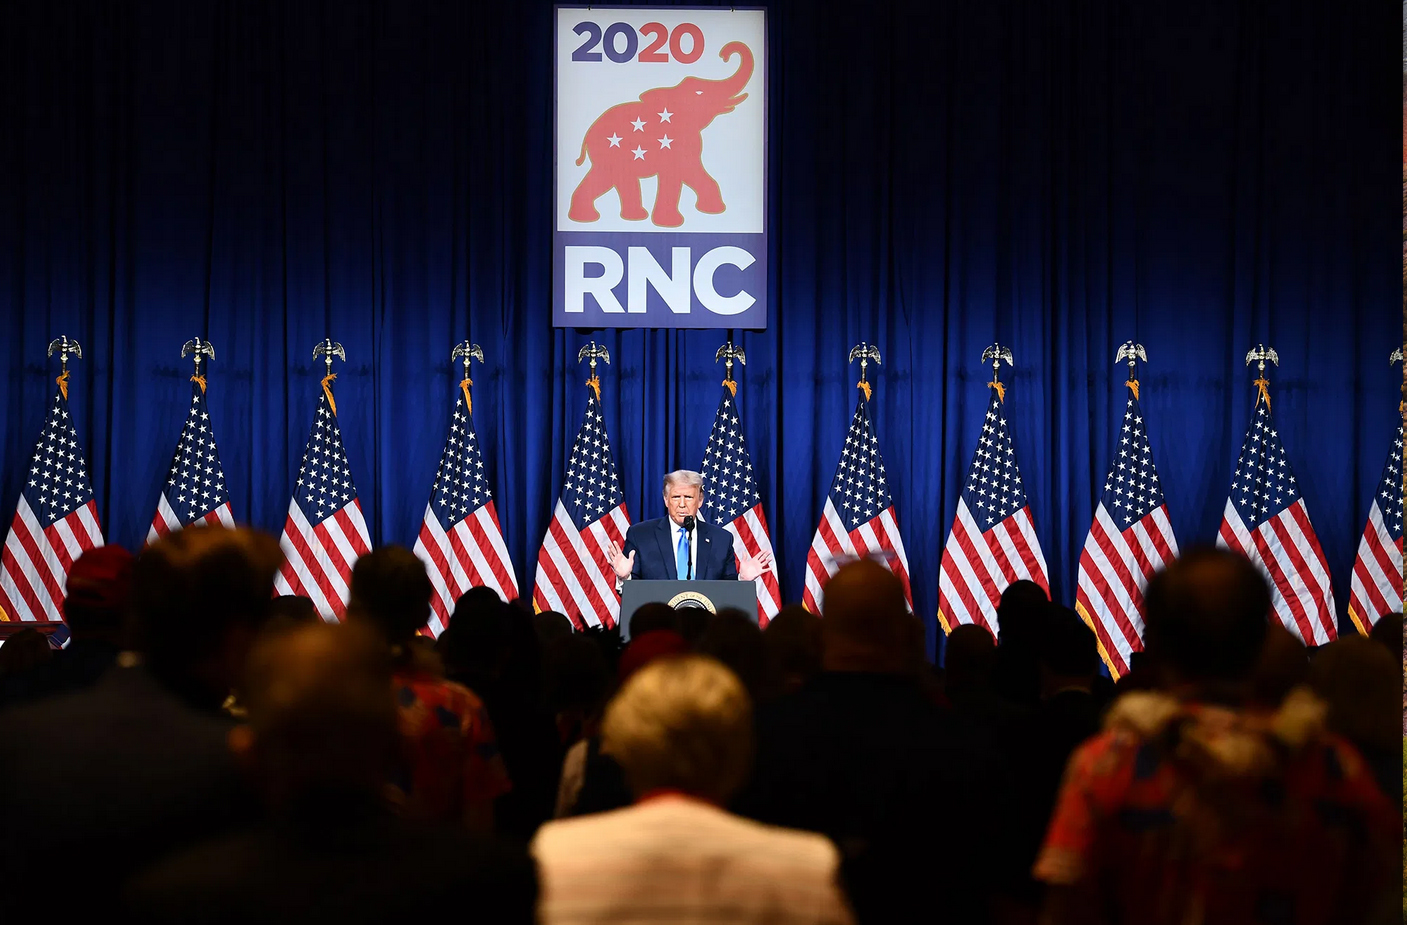 President Trump speaks during the first day of the Republican National Convention in Charlotte North Carolina.'